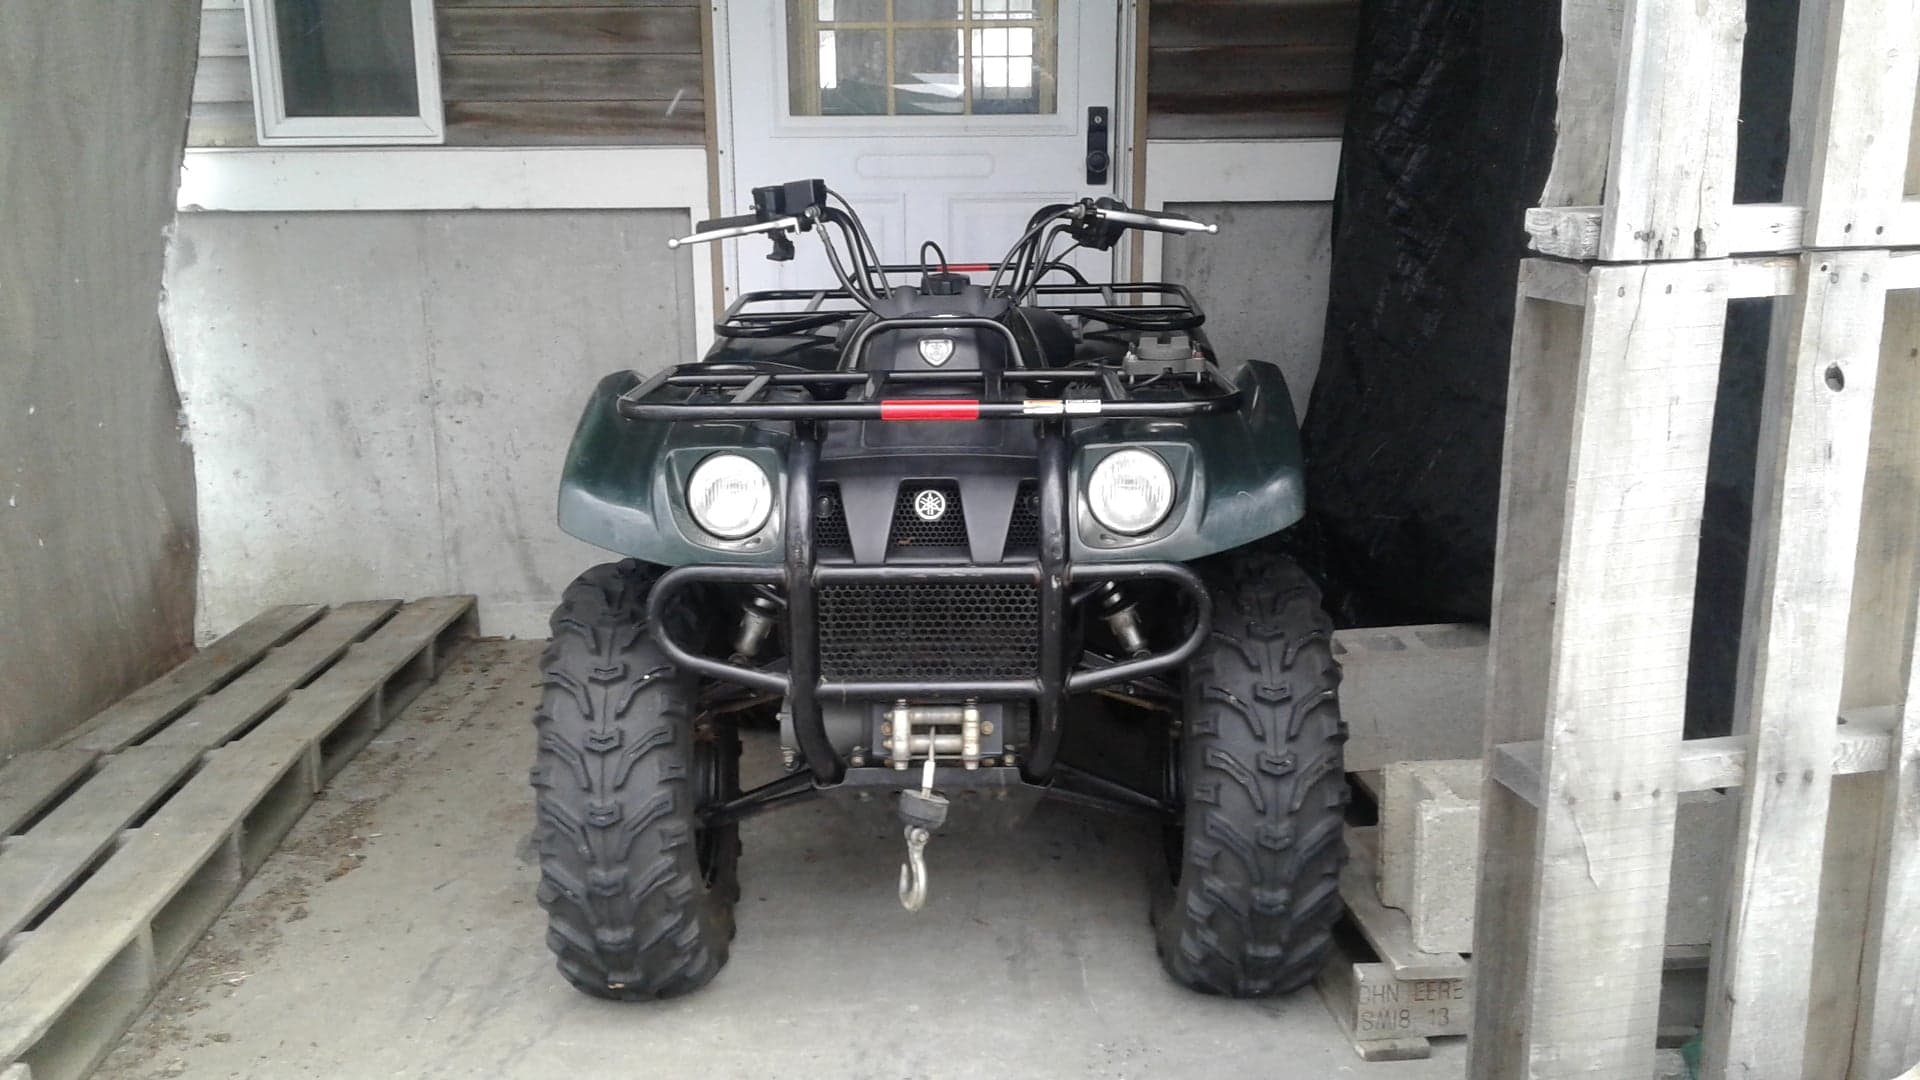 Help   2000 Yamaha Kodiak 400 2wd  Anyone Know How To Get A Little More Hp Out Of My